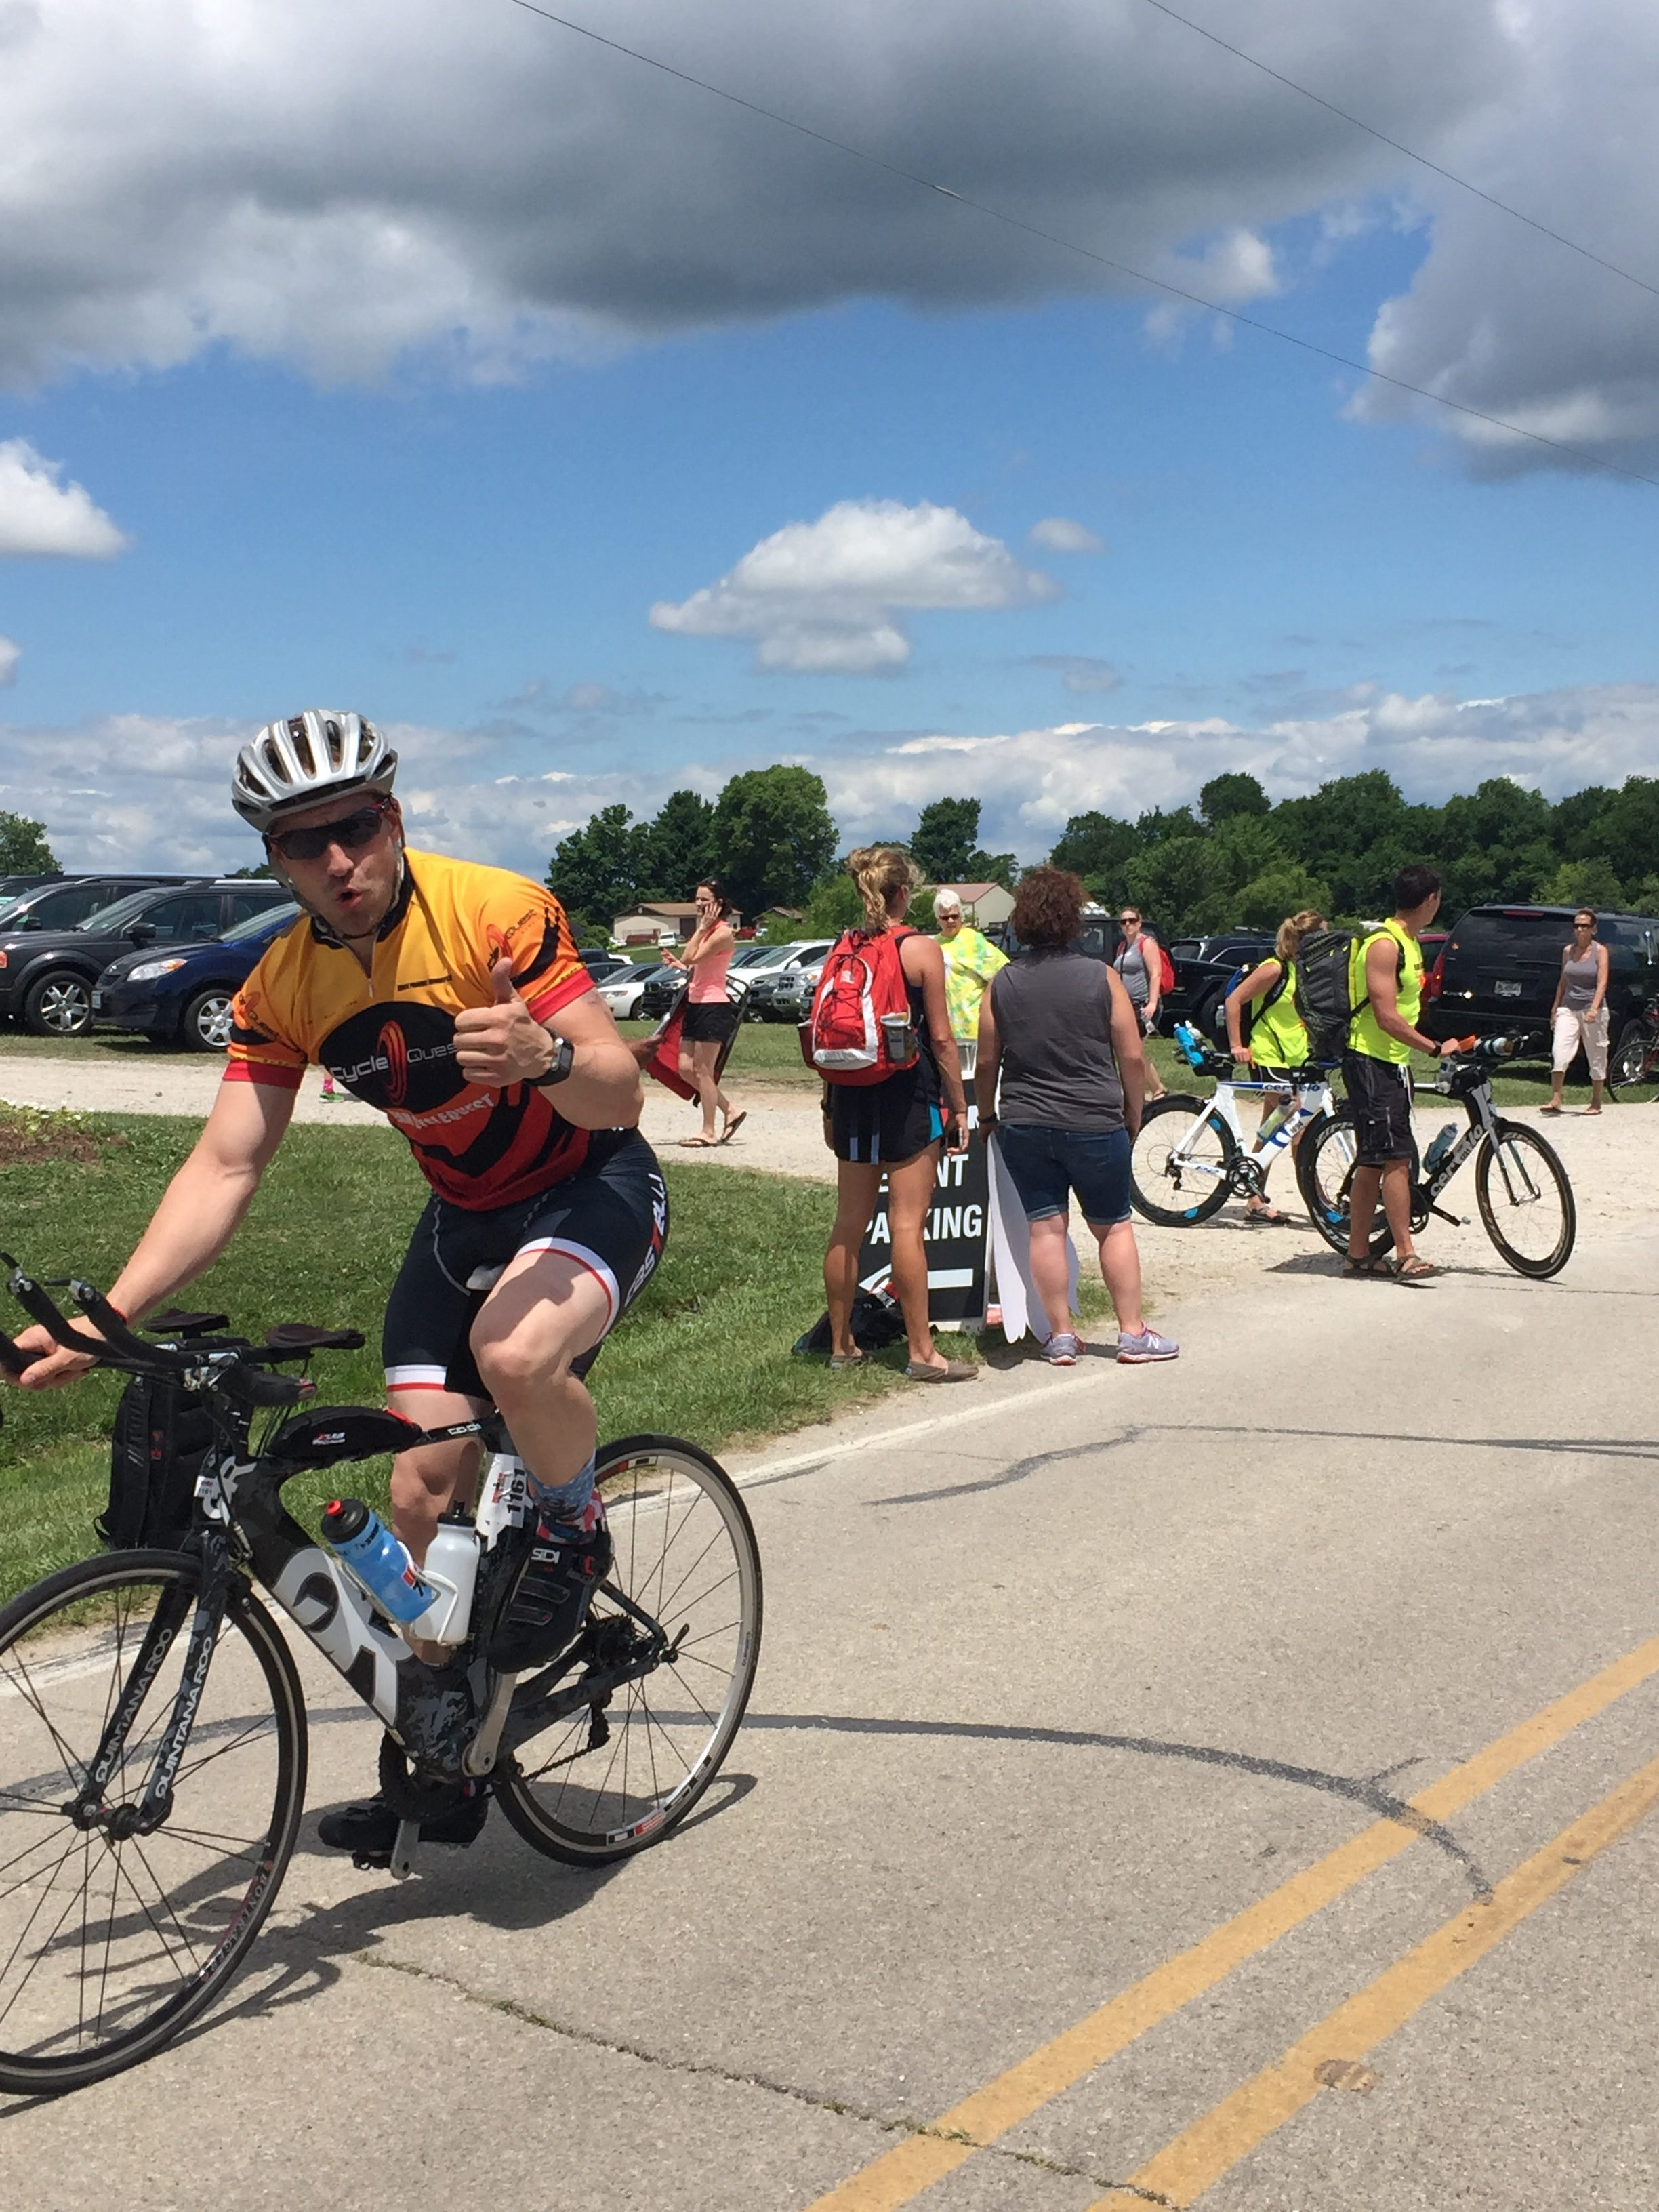 Jason competing in the cycling portion of his first Iron Man competition